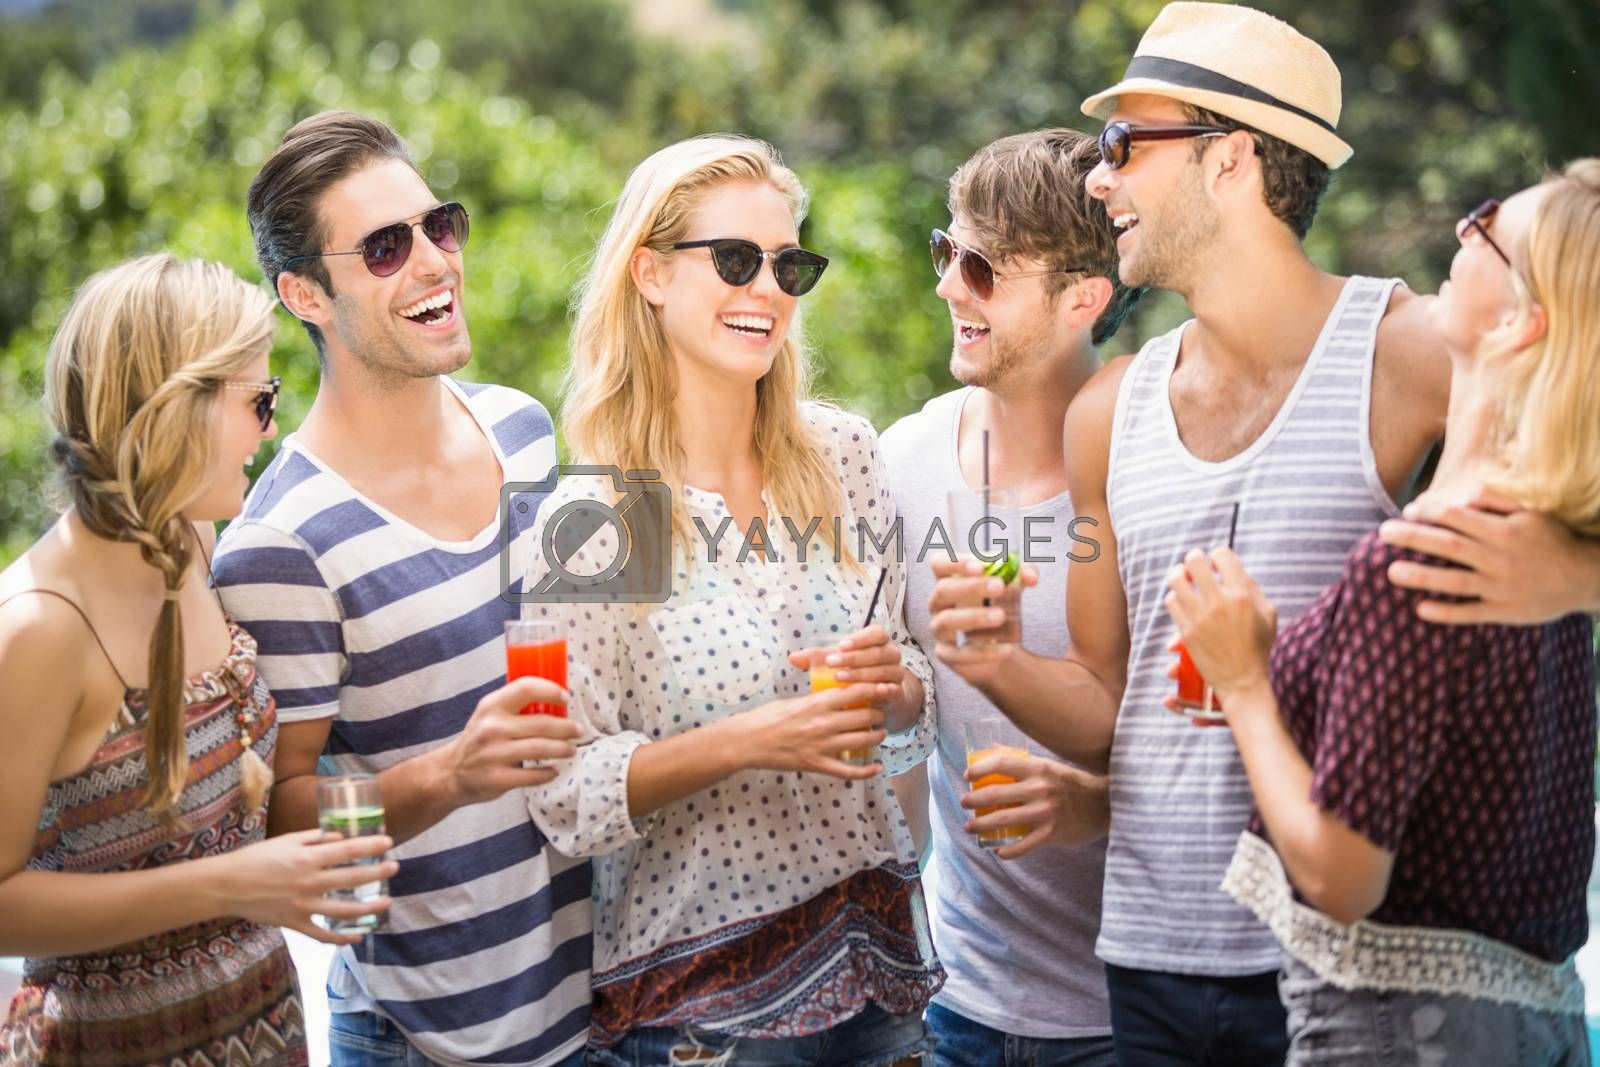 Group of happy friends having juice while enjoying together